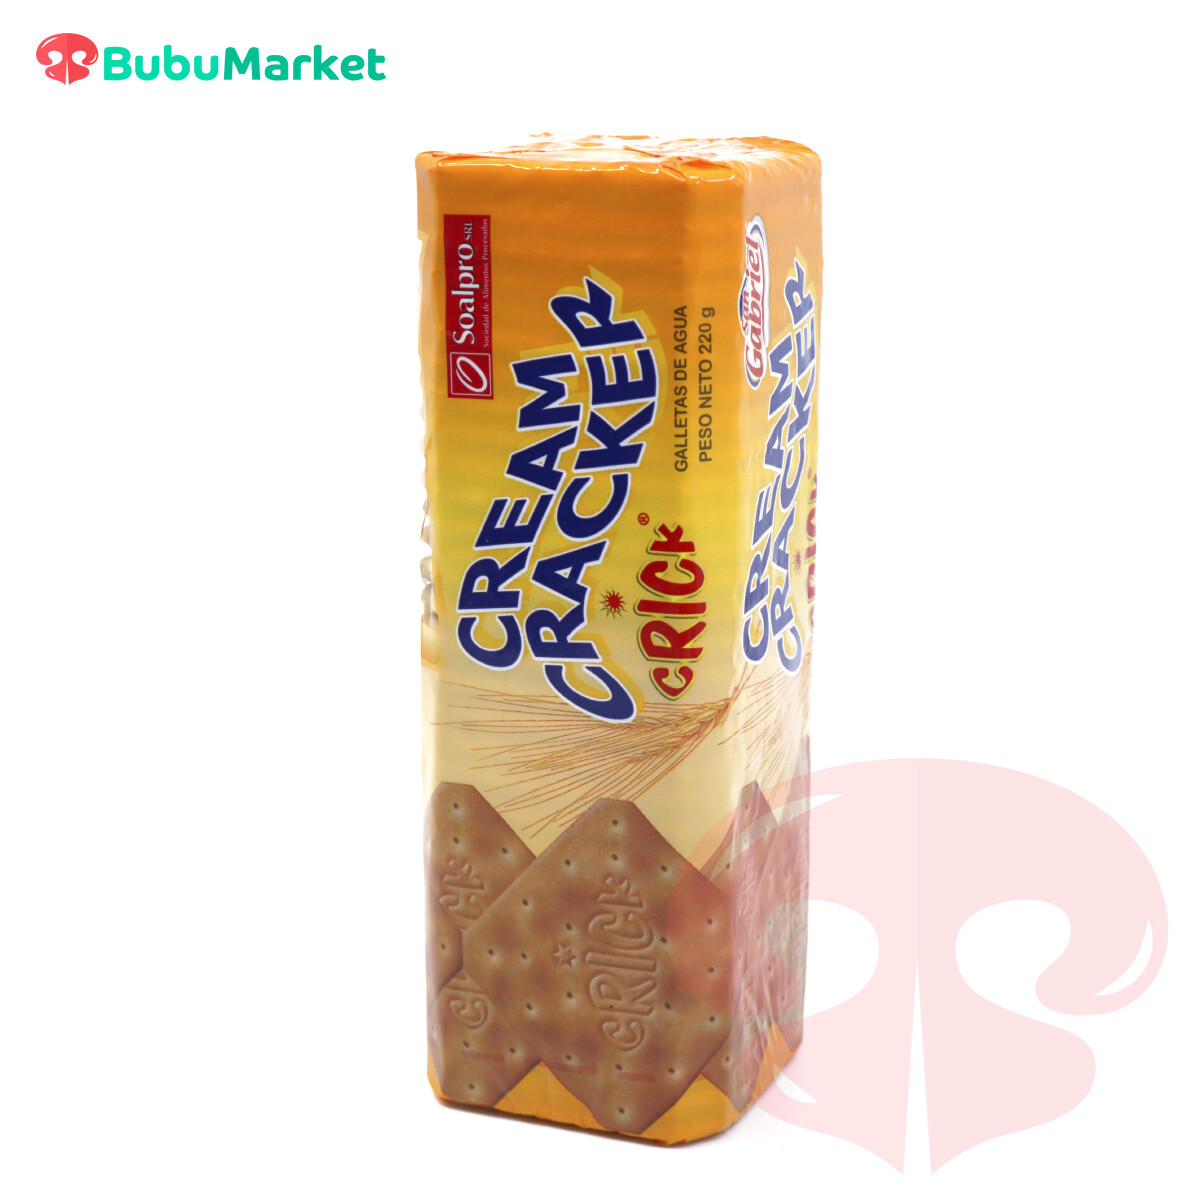 GALLETAS DE AGUA SAN GABRIEL CRICK CREAM CRACKER DE 220 GR.